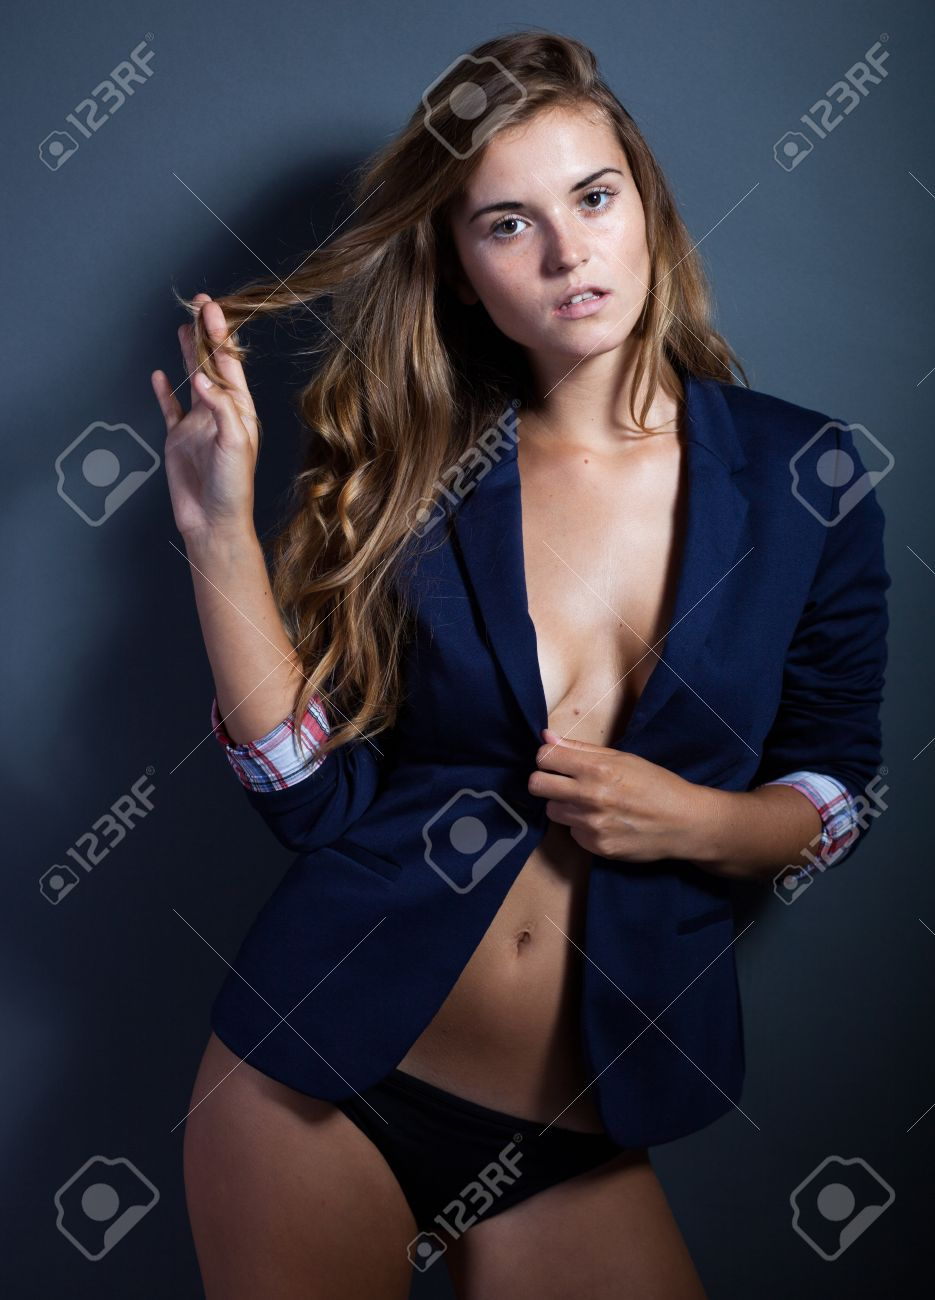 Sexy Elegant Woman Without Bra In Jacket And Panties Stock Photo ...